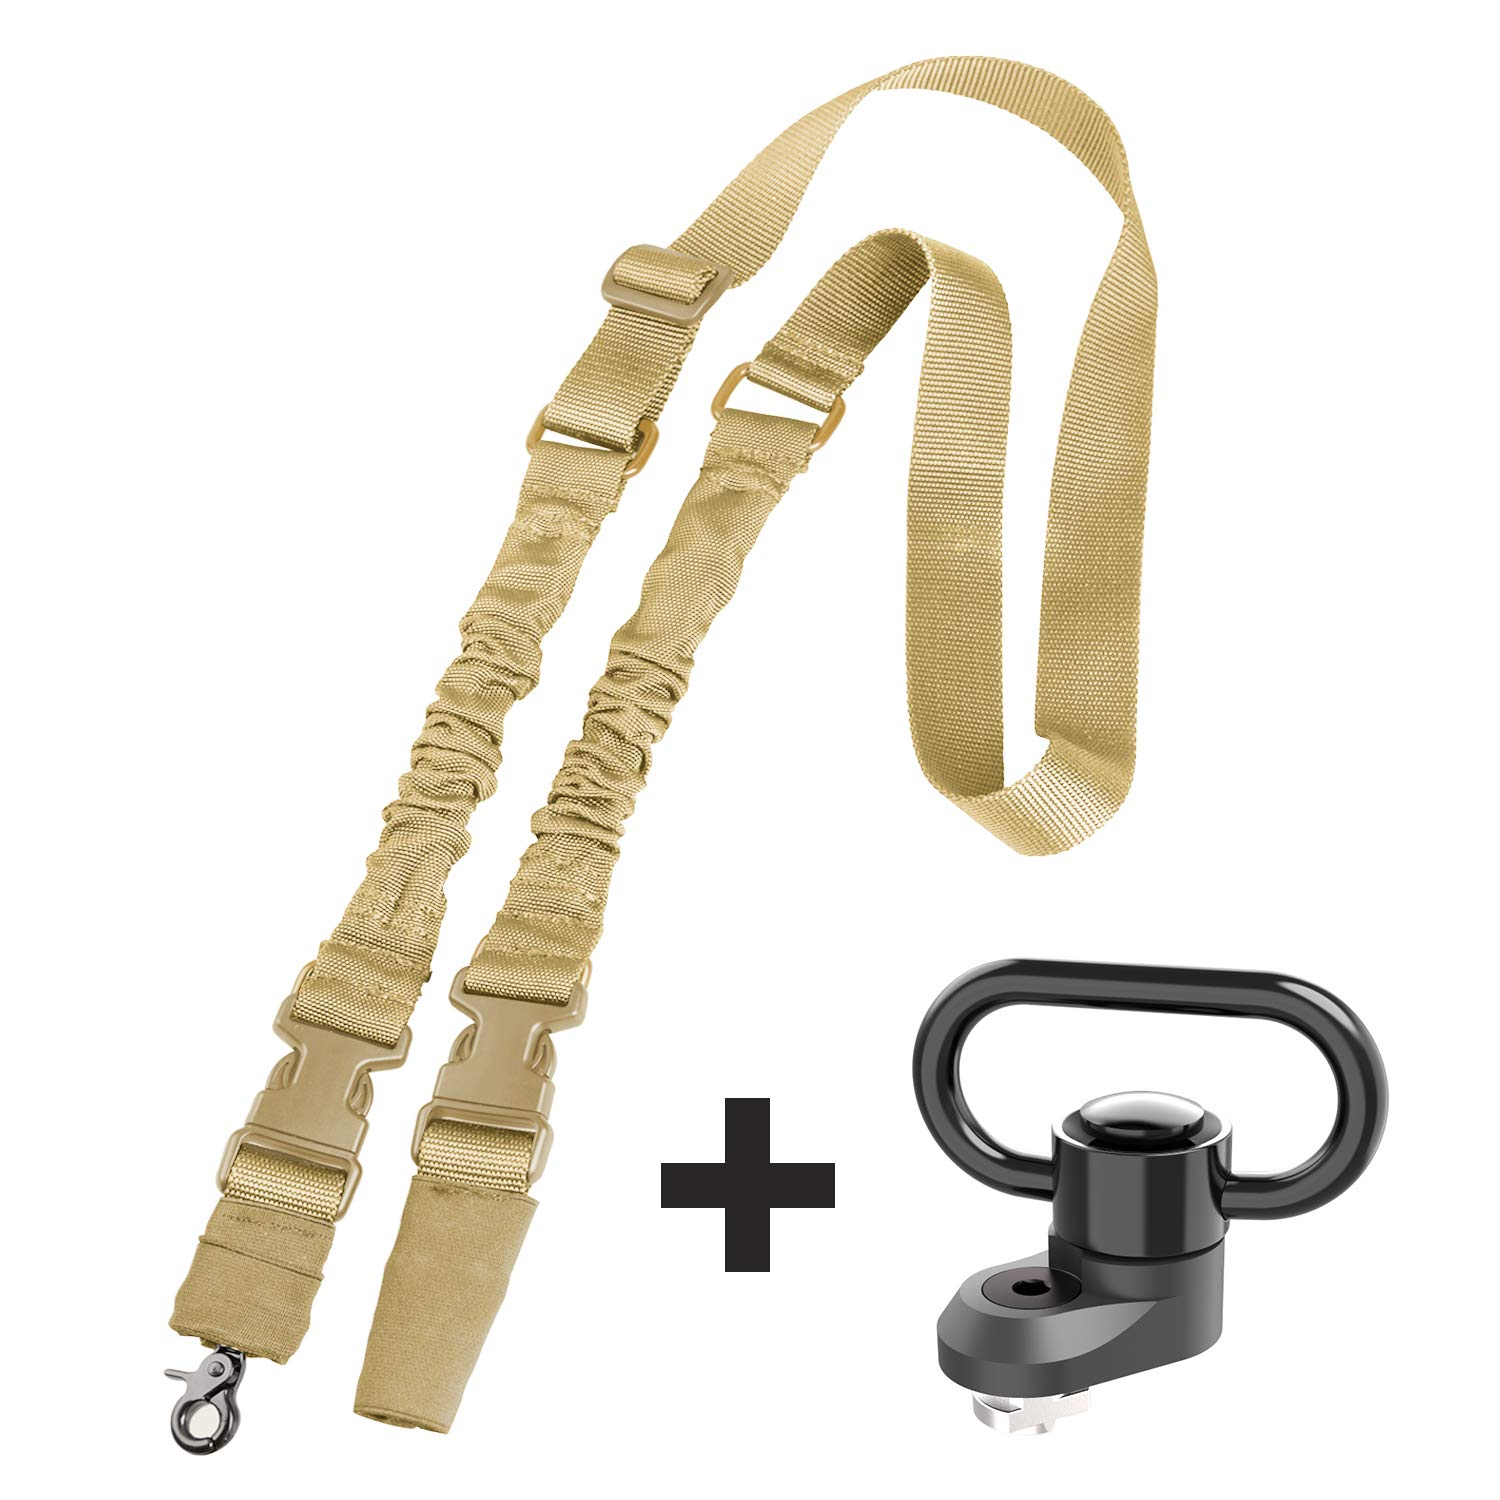 Tough Tactical Tools M-LOK(R) Standard QD Sling Swivel Adapter, Rail Mount with 2 Point Gun Sling for Hunting Shooting or Other Outdoor Sports (QD Minimum) by Tough Tactical Tools